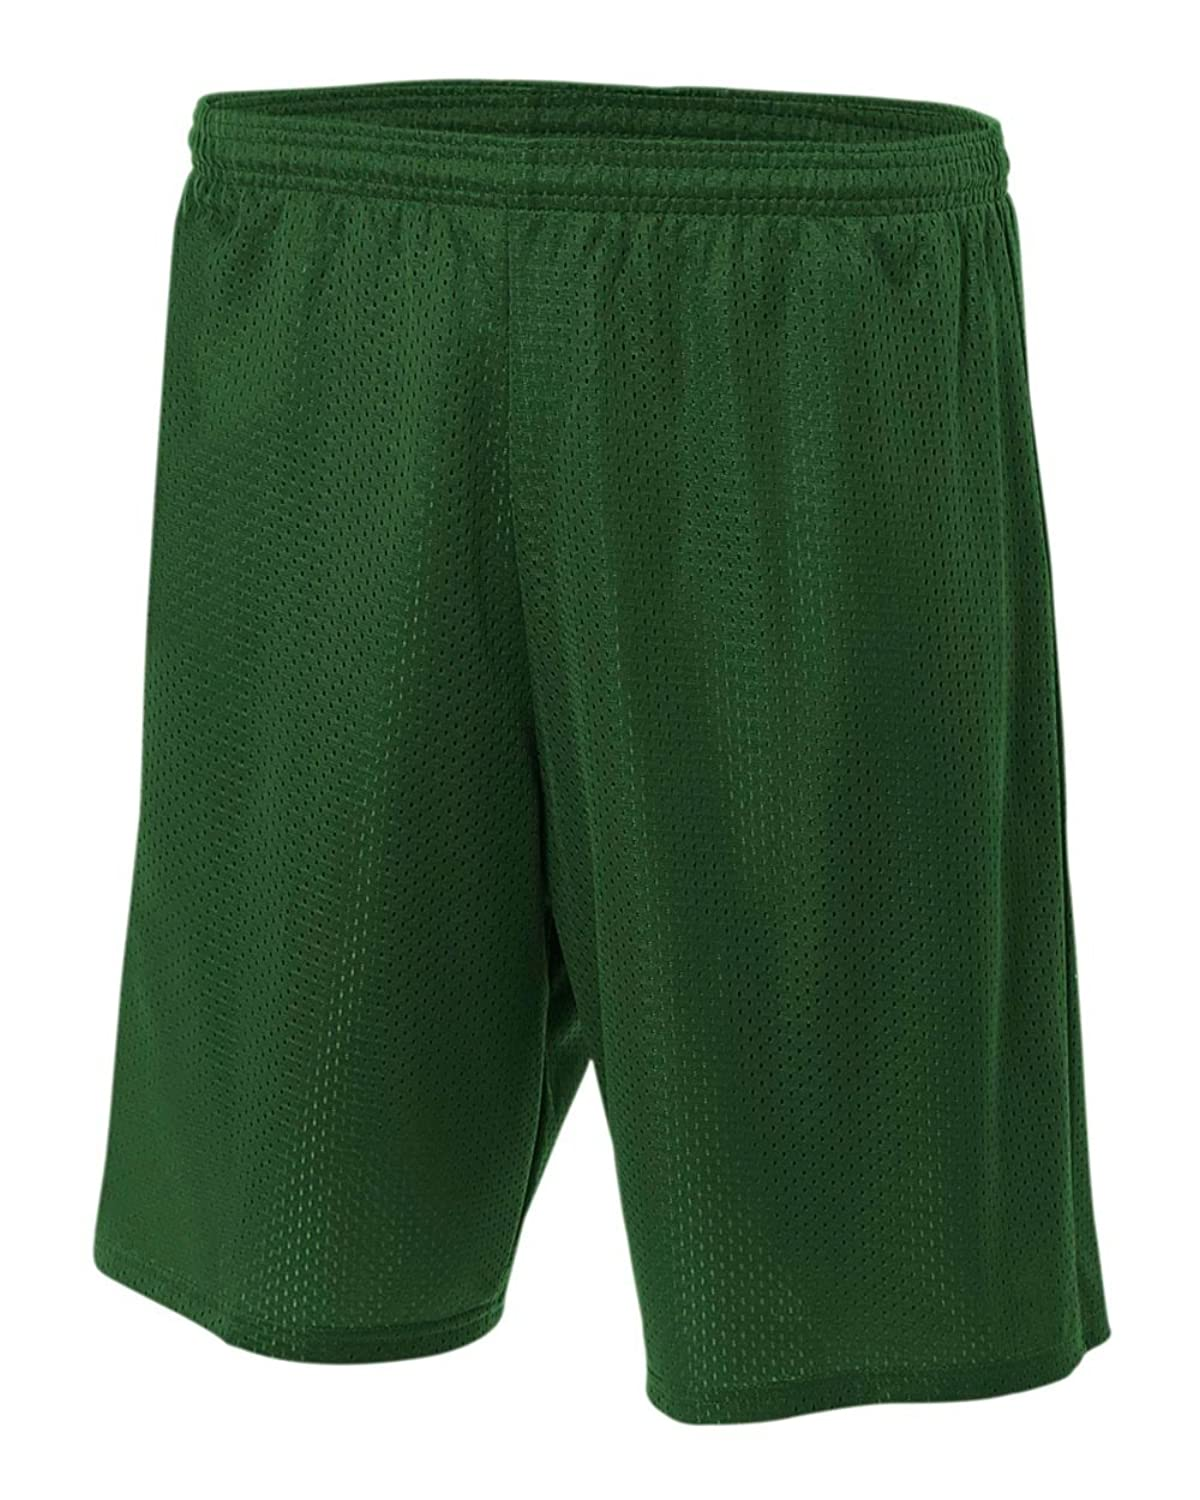 "A4 Adult 9"" Lined Tricot Mesh Shorts (Forest) (3X-Large)"